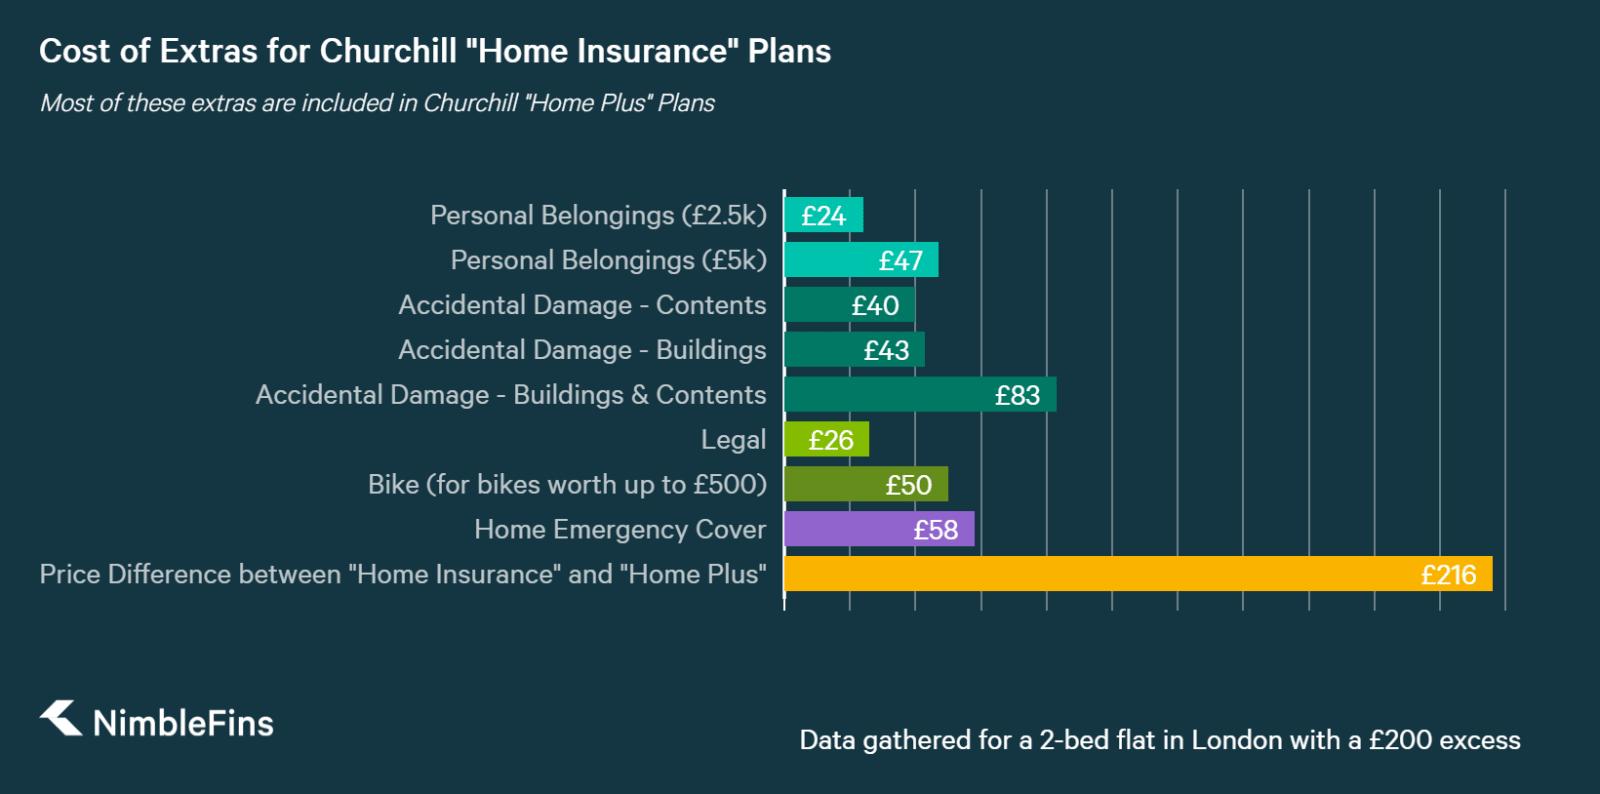 chart showing approximate cost of home insurance add ons for Churchill home insurance